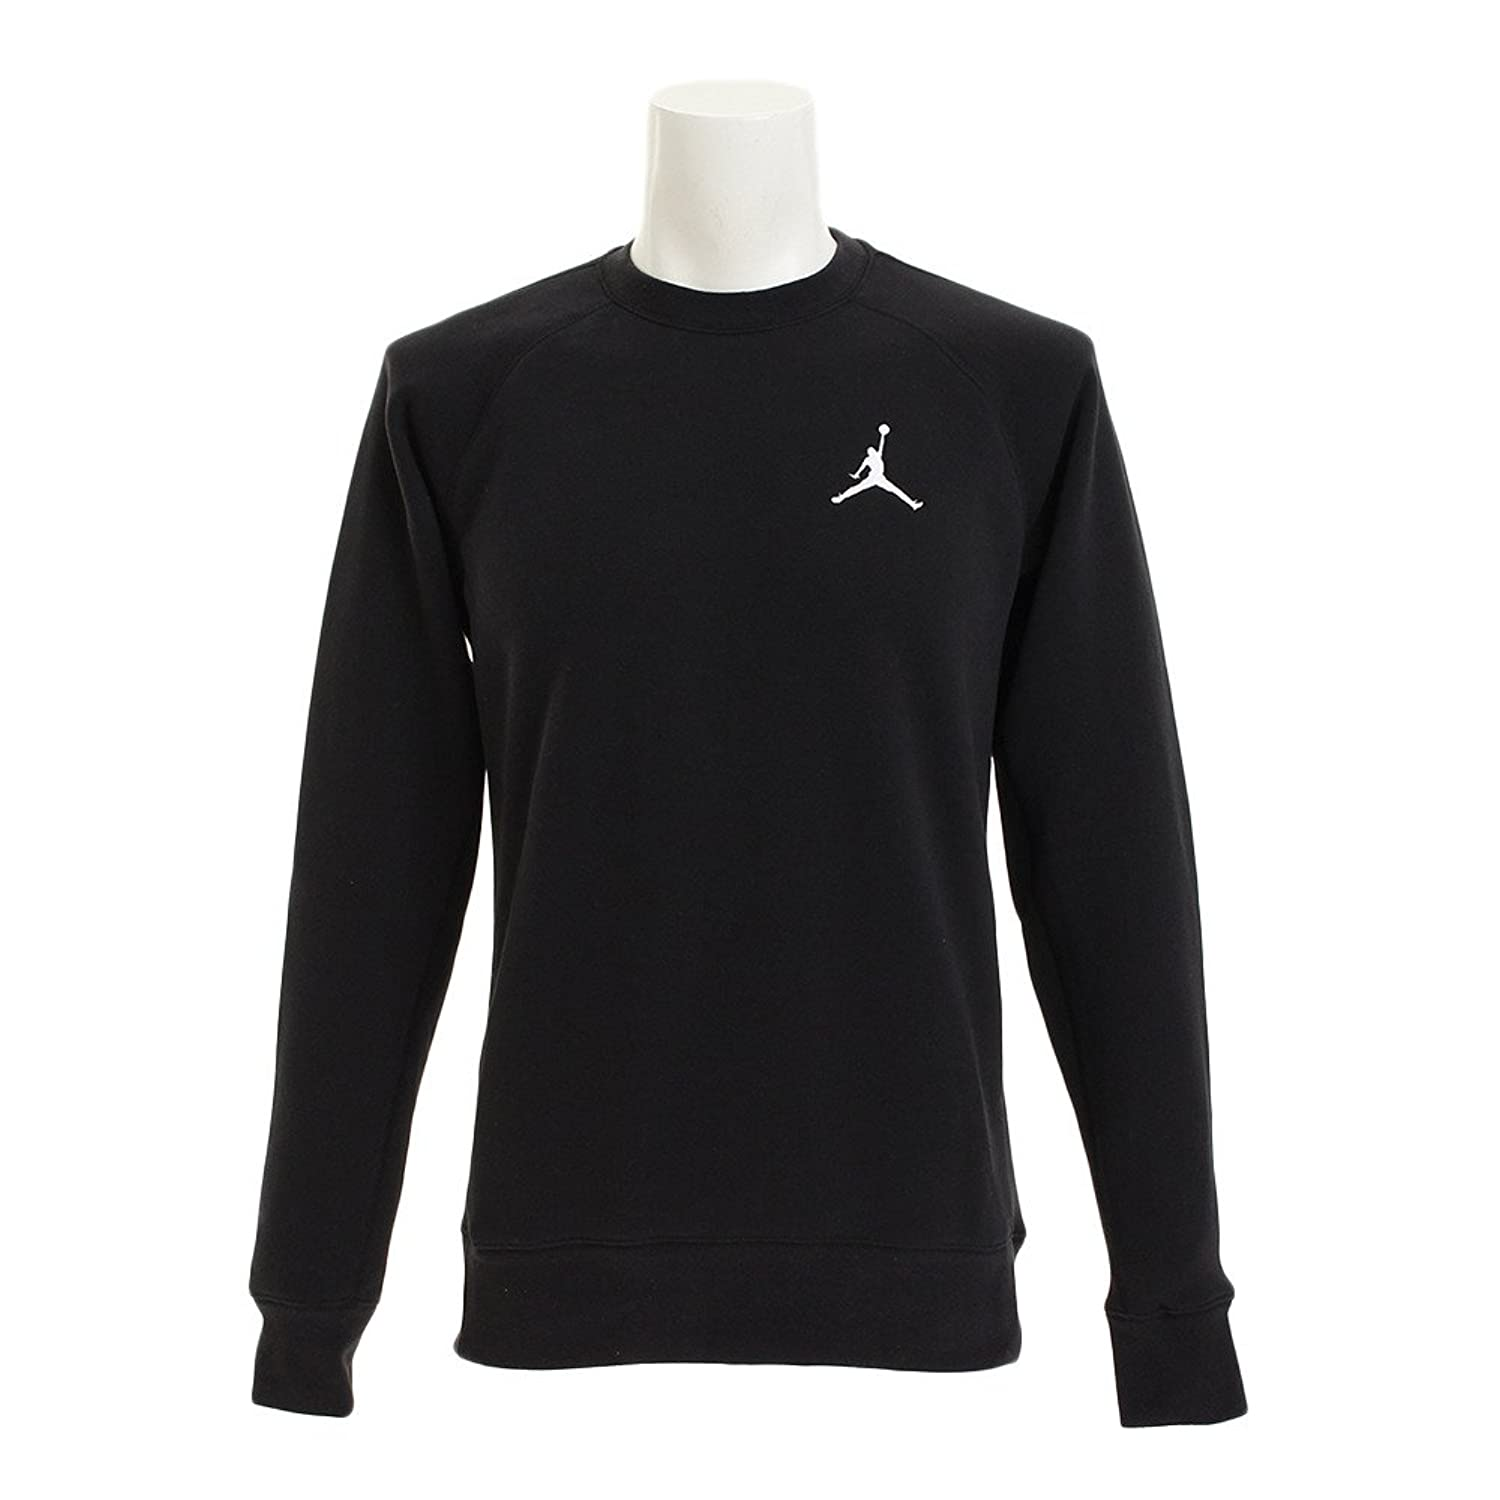 545e5add9c49 Raglan sleeves for natural range of motion. Rib cuffs and hem for snug fit.  Jordan Jumpman ebroidered on Chest